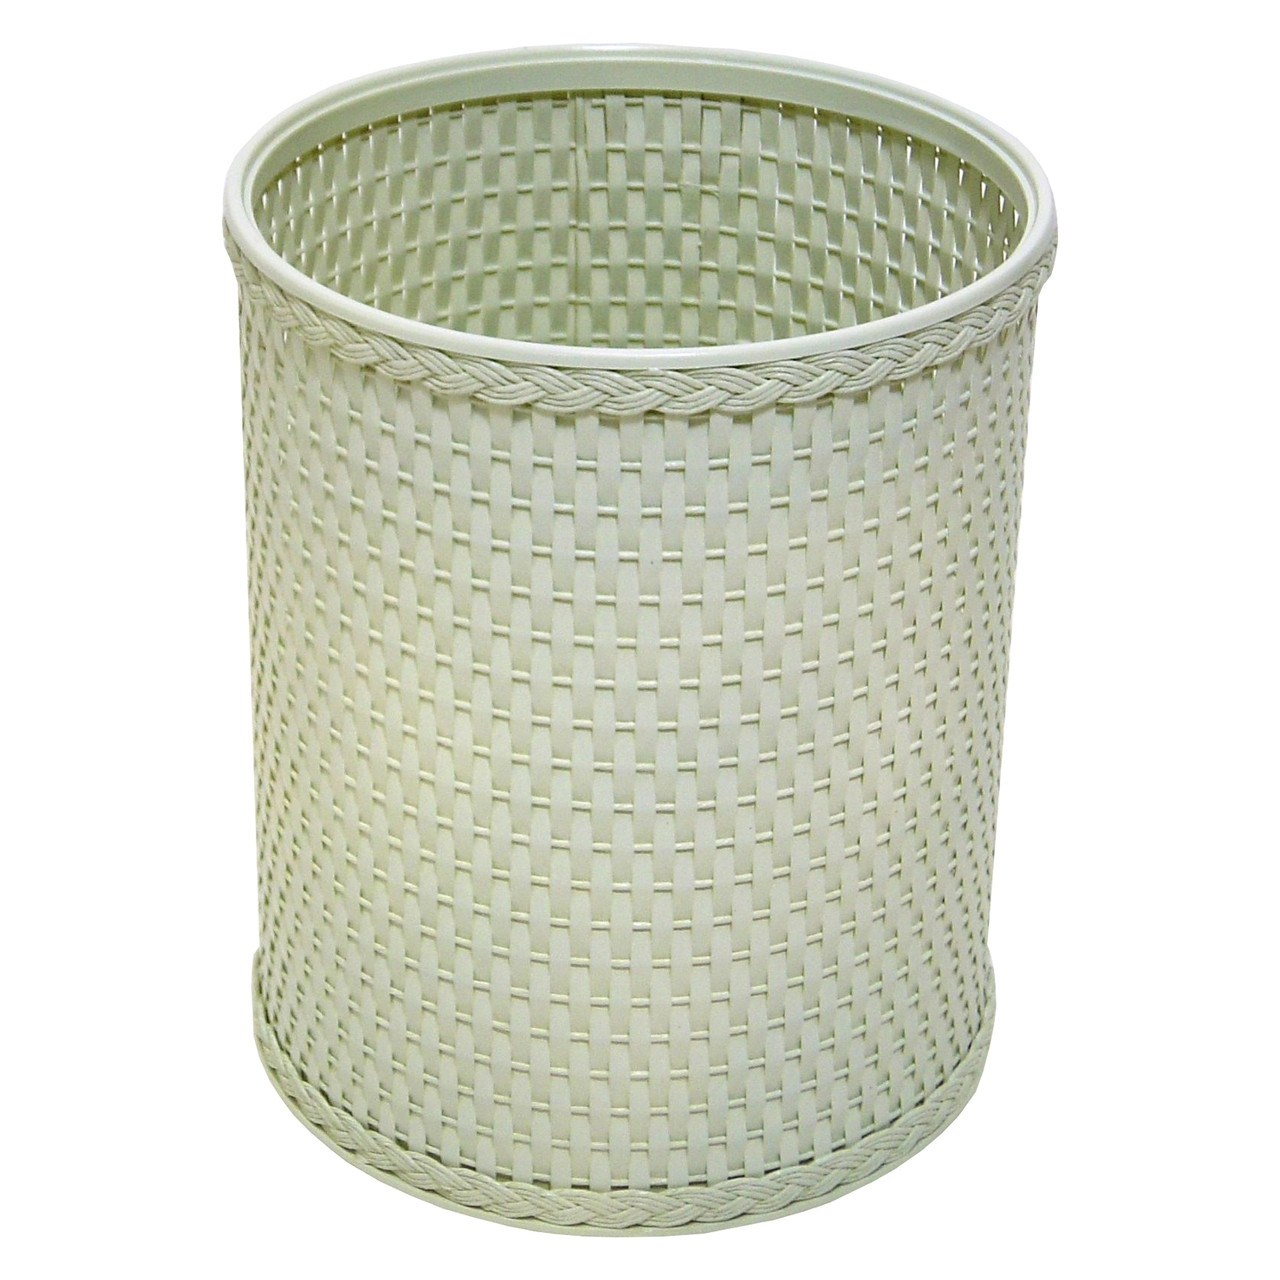 Chelsea Wicker Round Wastebasket Herbal Green